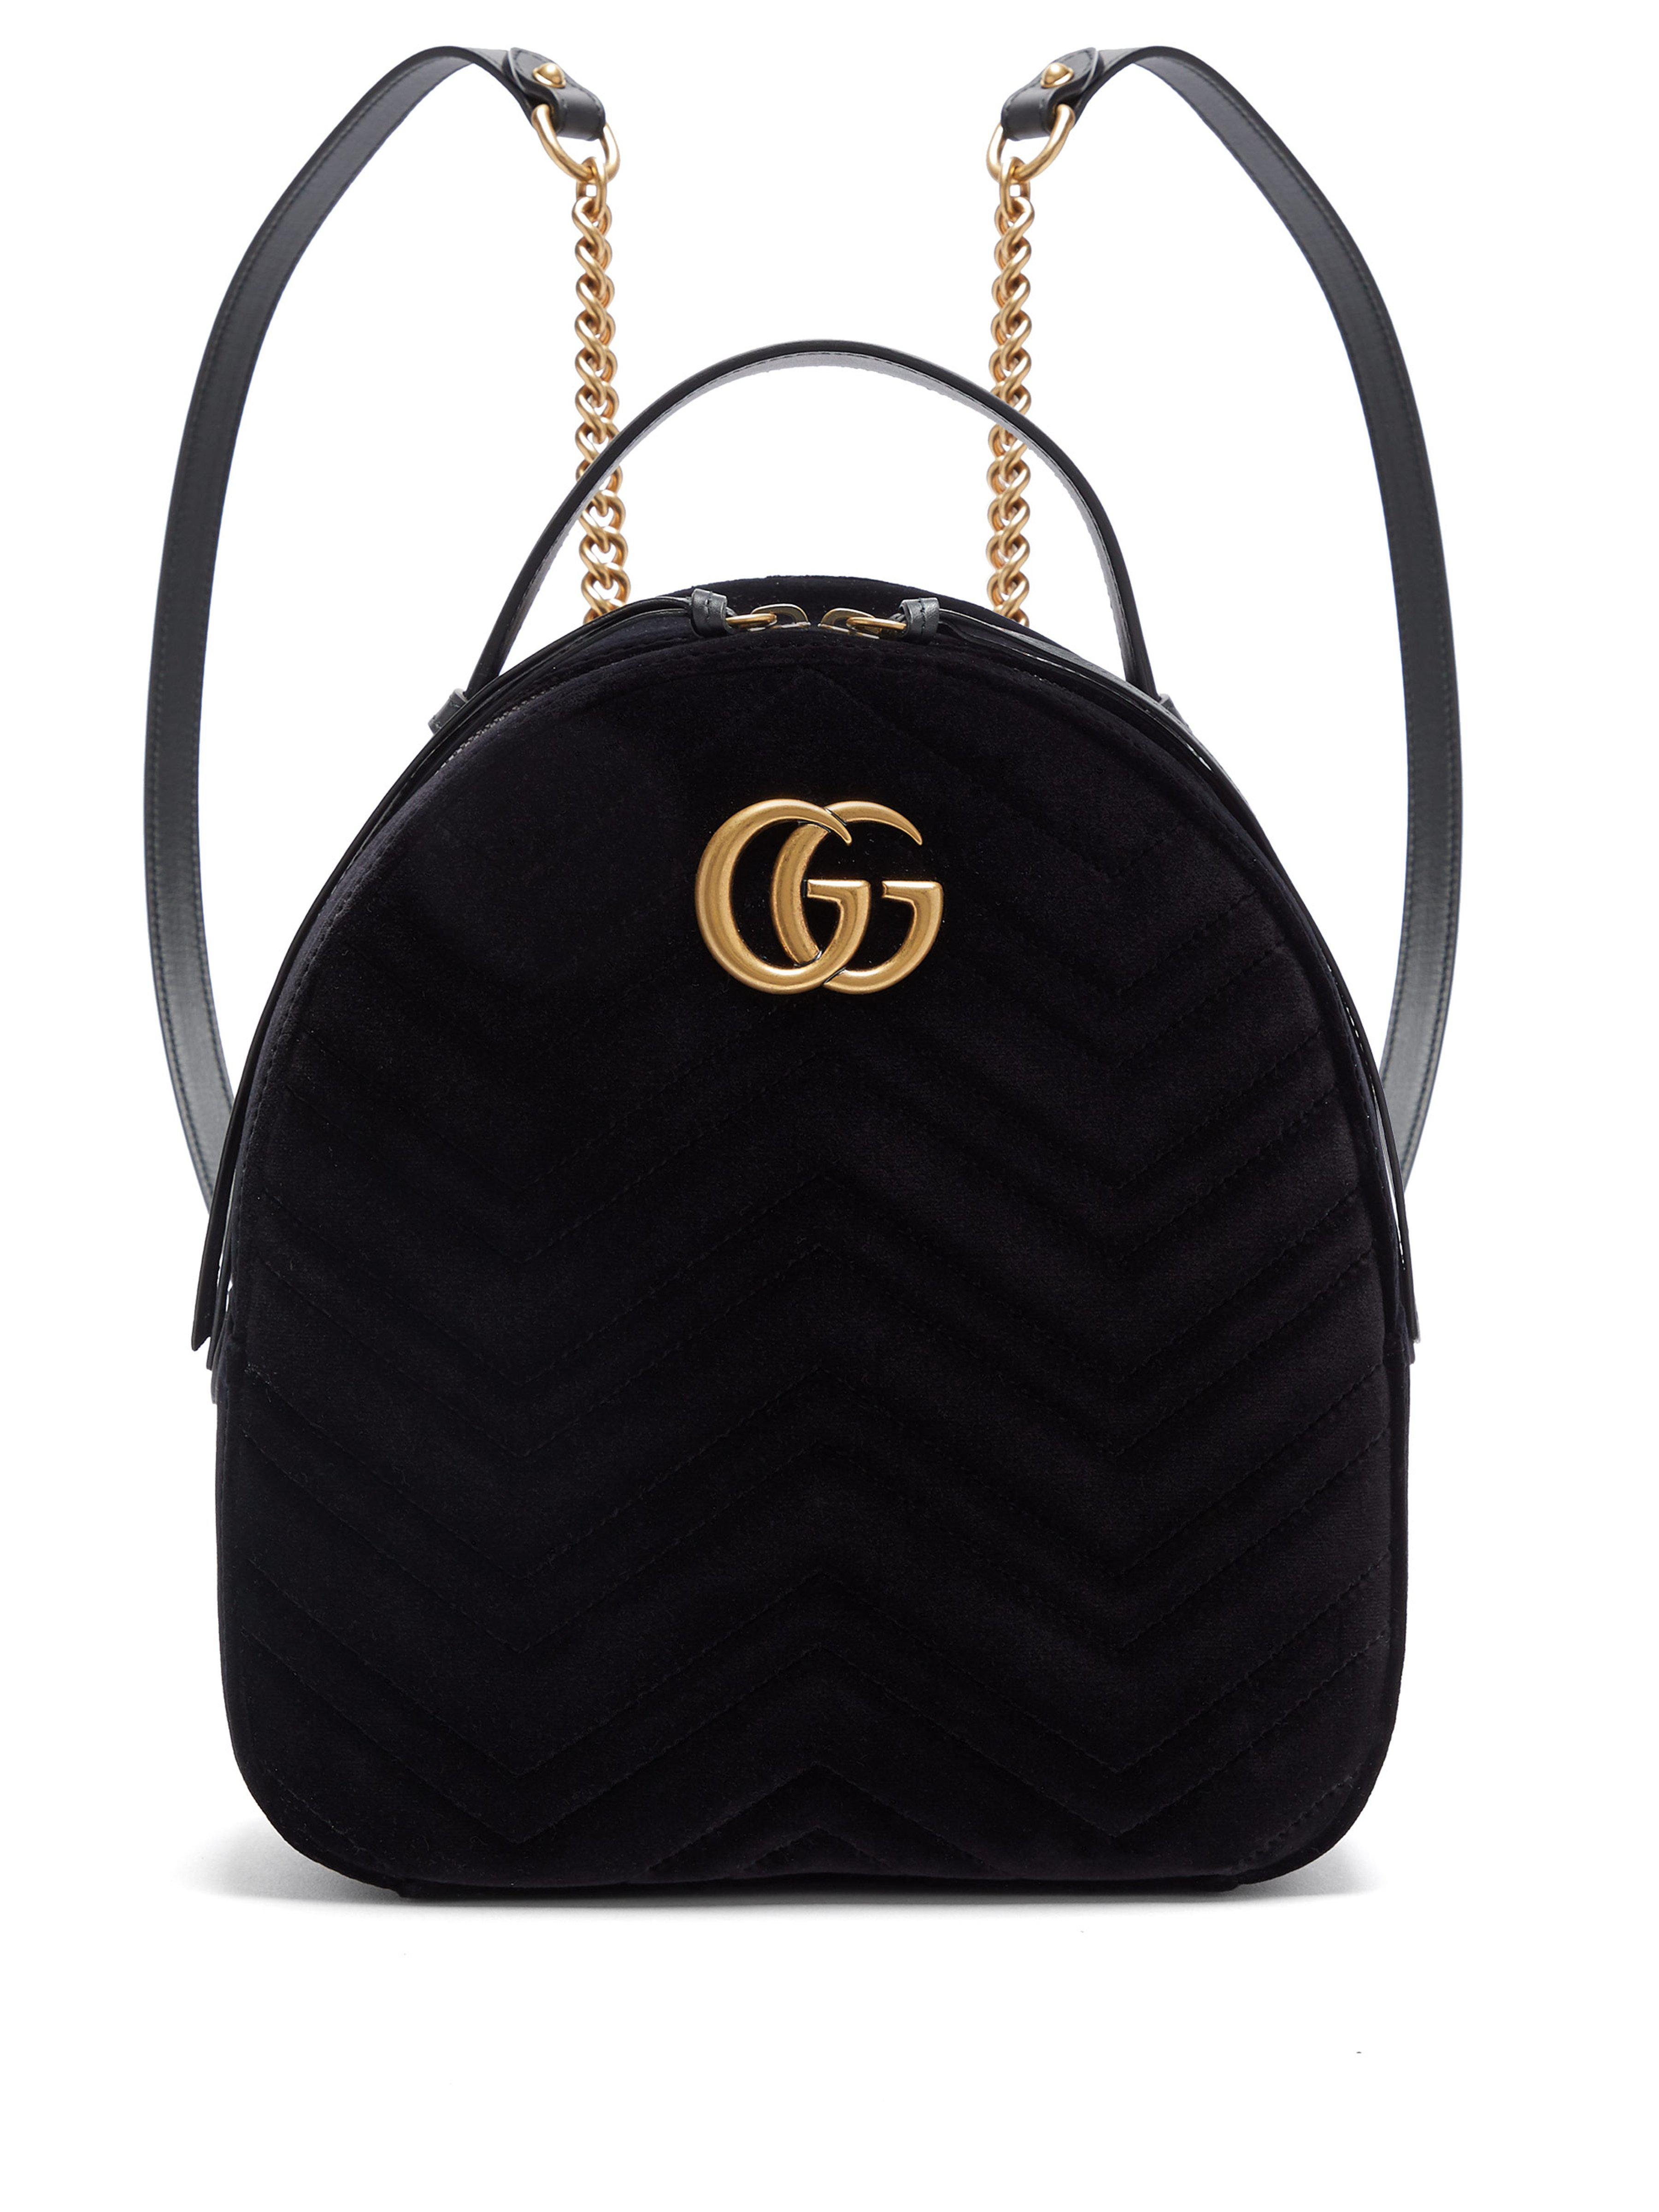 5d18d1fa2079 Gucci Gg Marmont Velvet Backpack in Black - Lyst